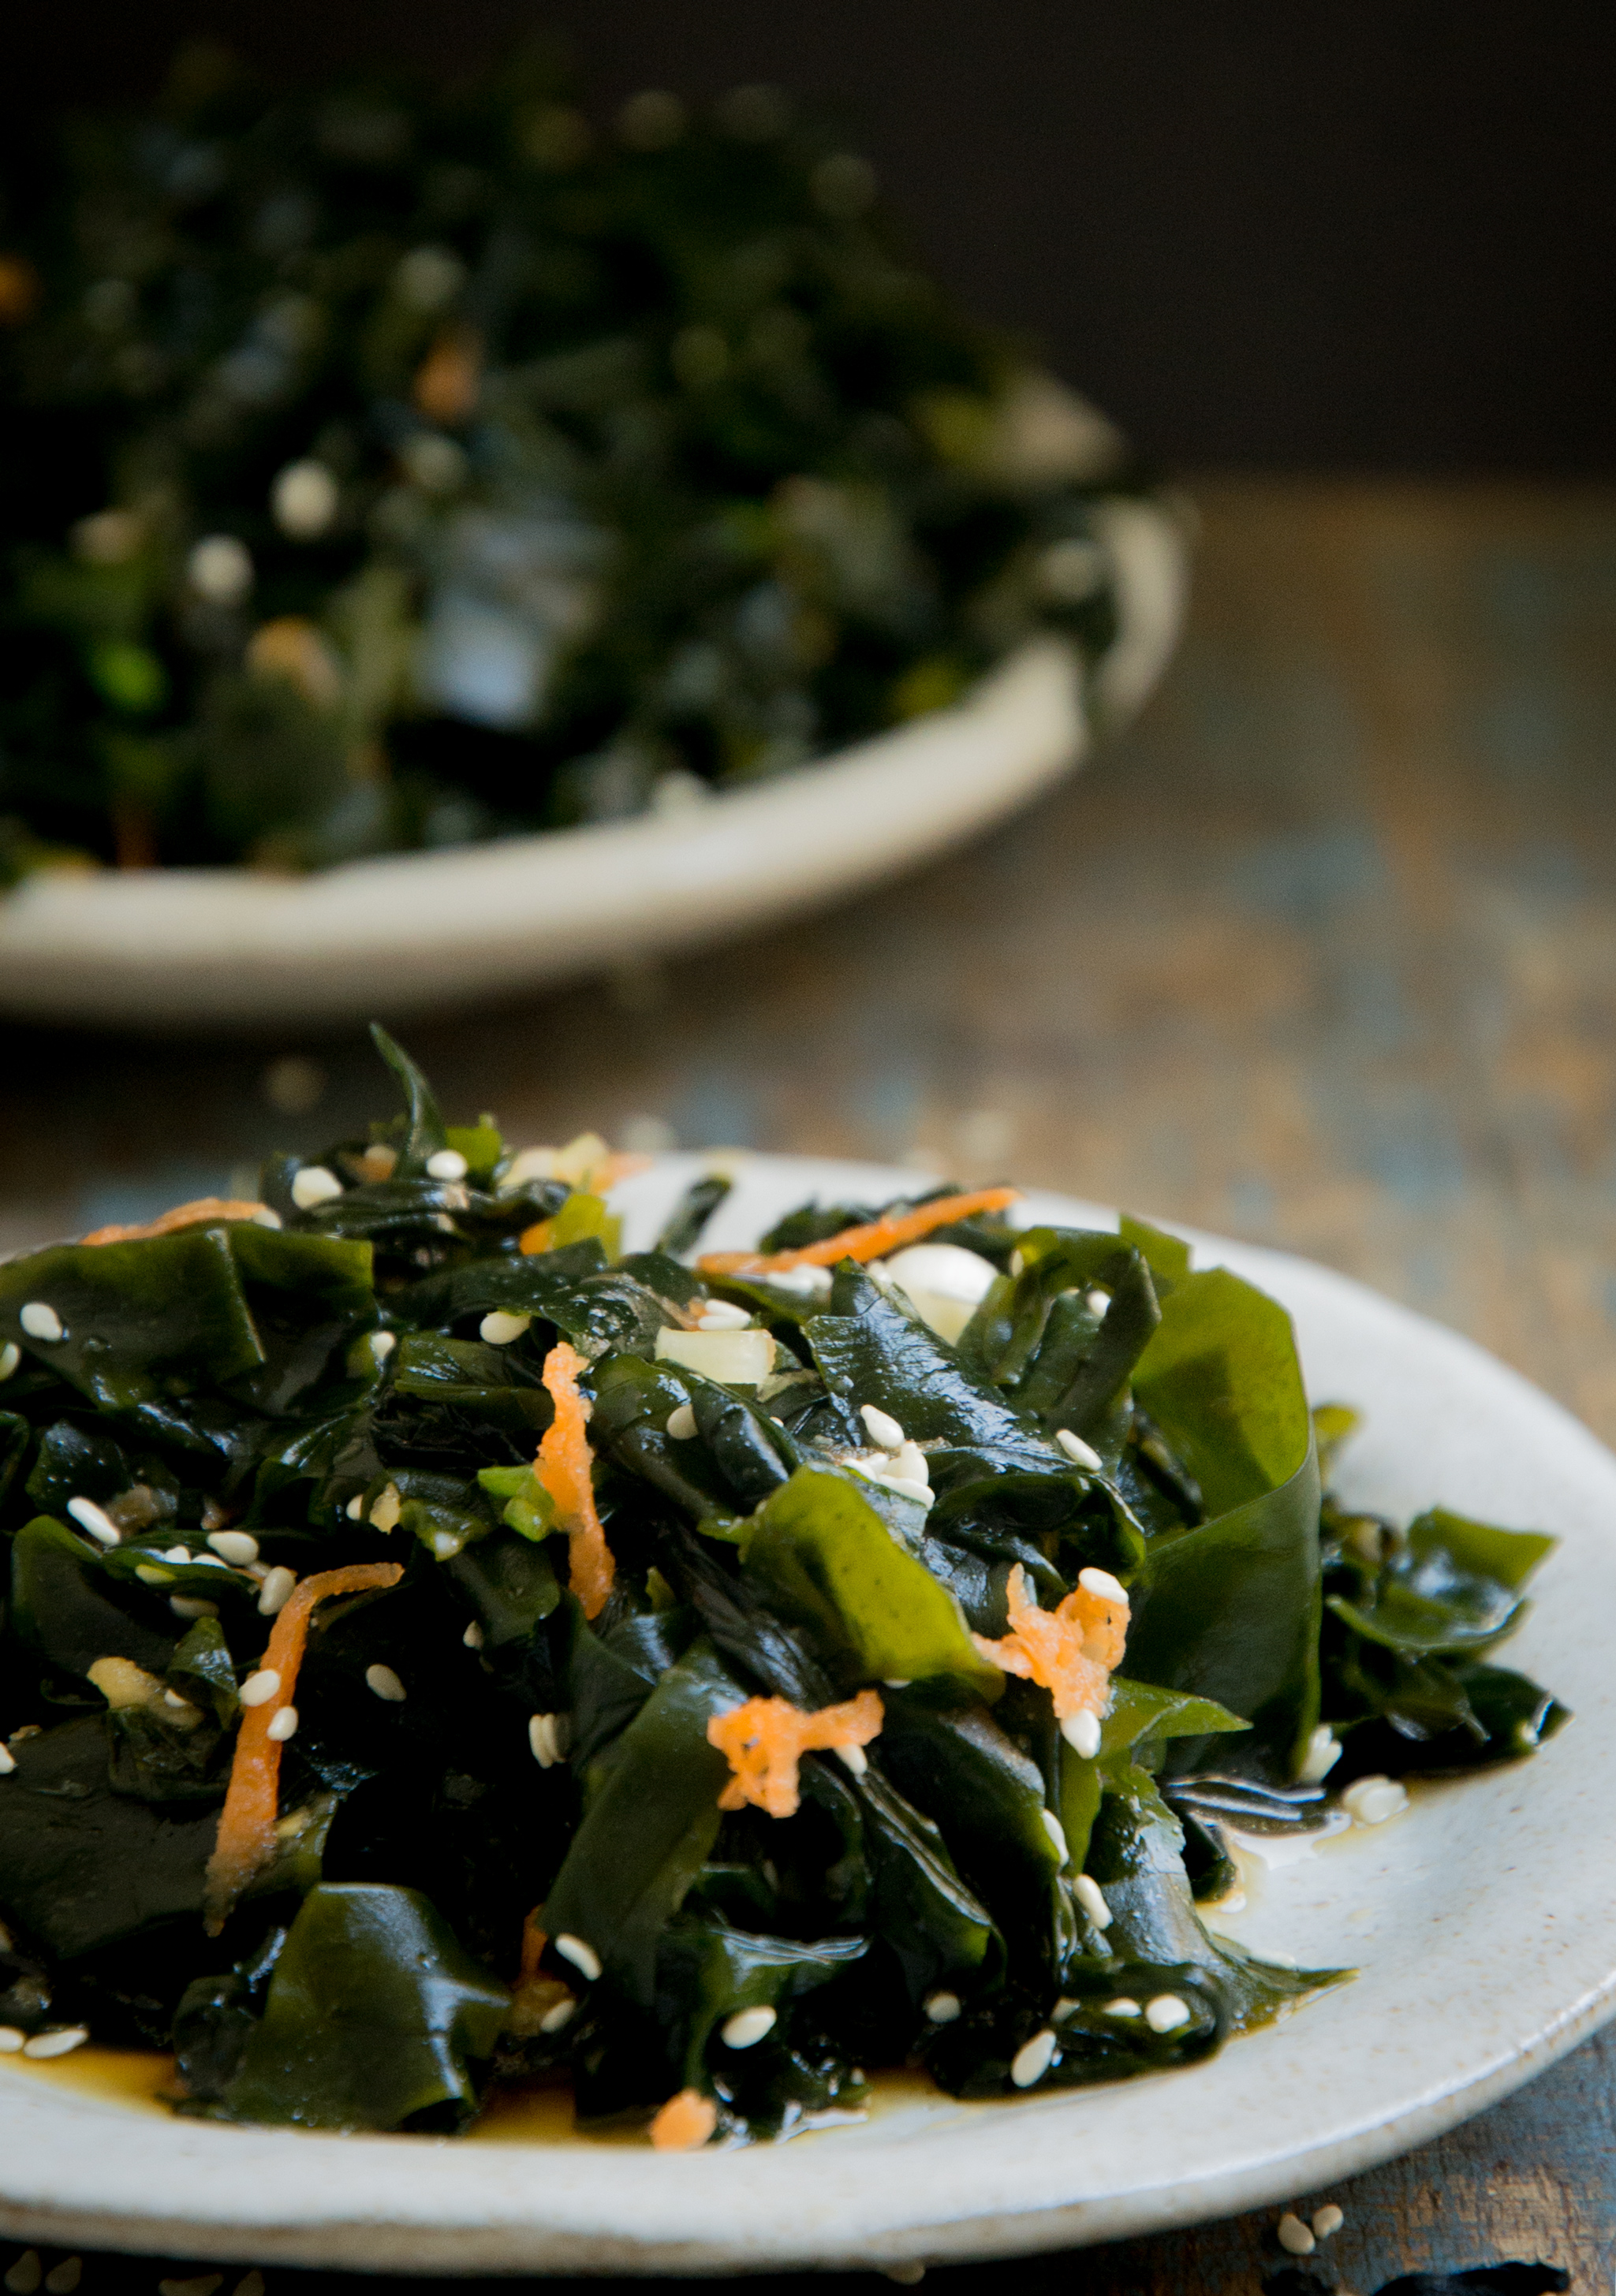 Low-Carb Seaweed Salad Recipe-Close-up on the small plate